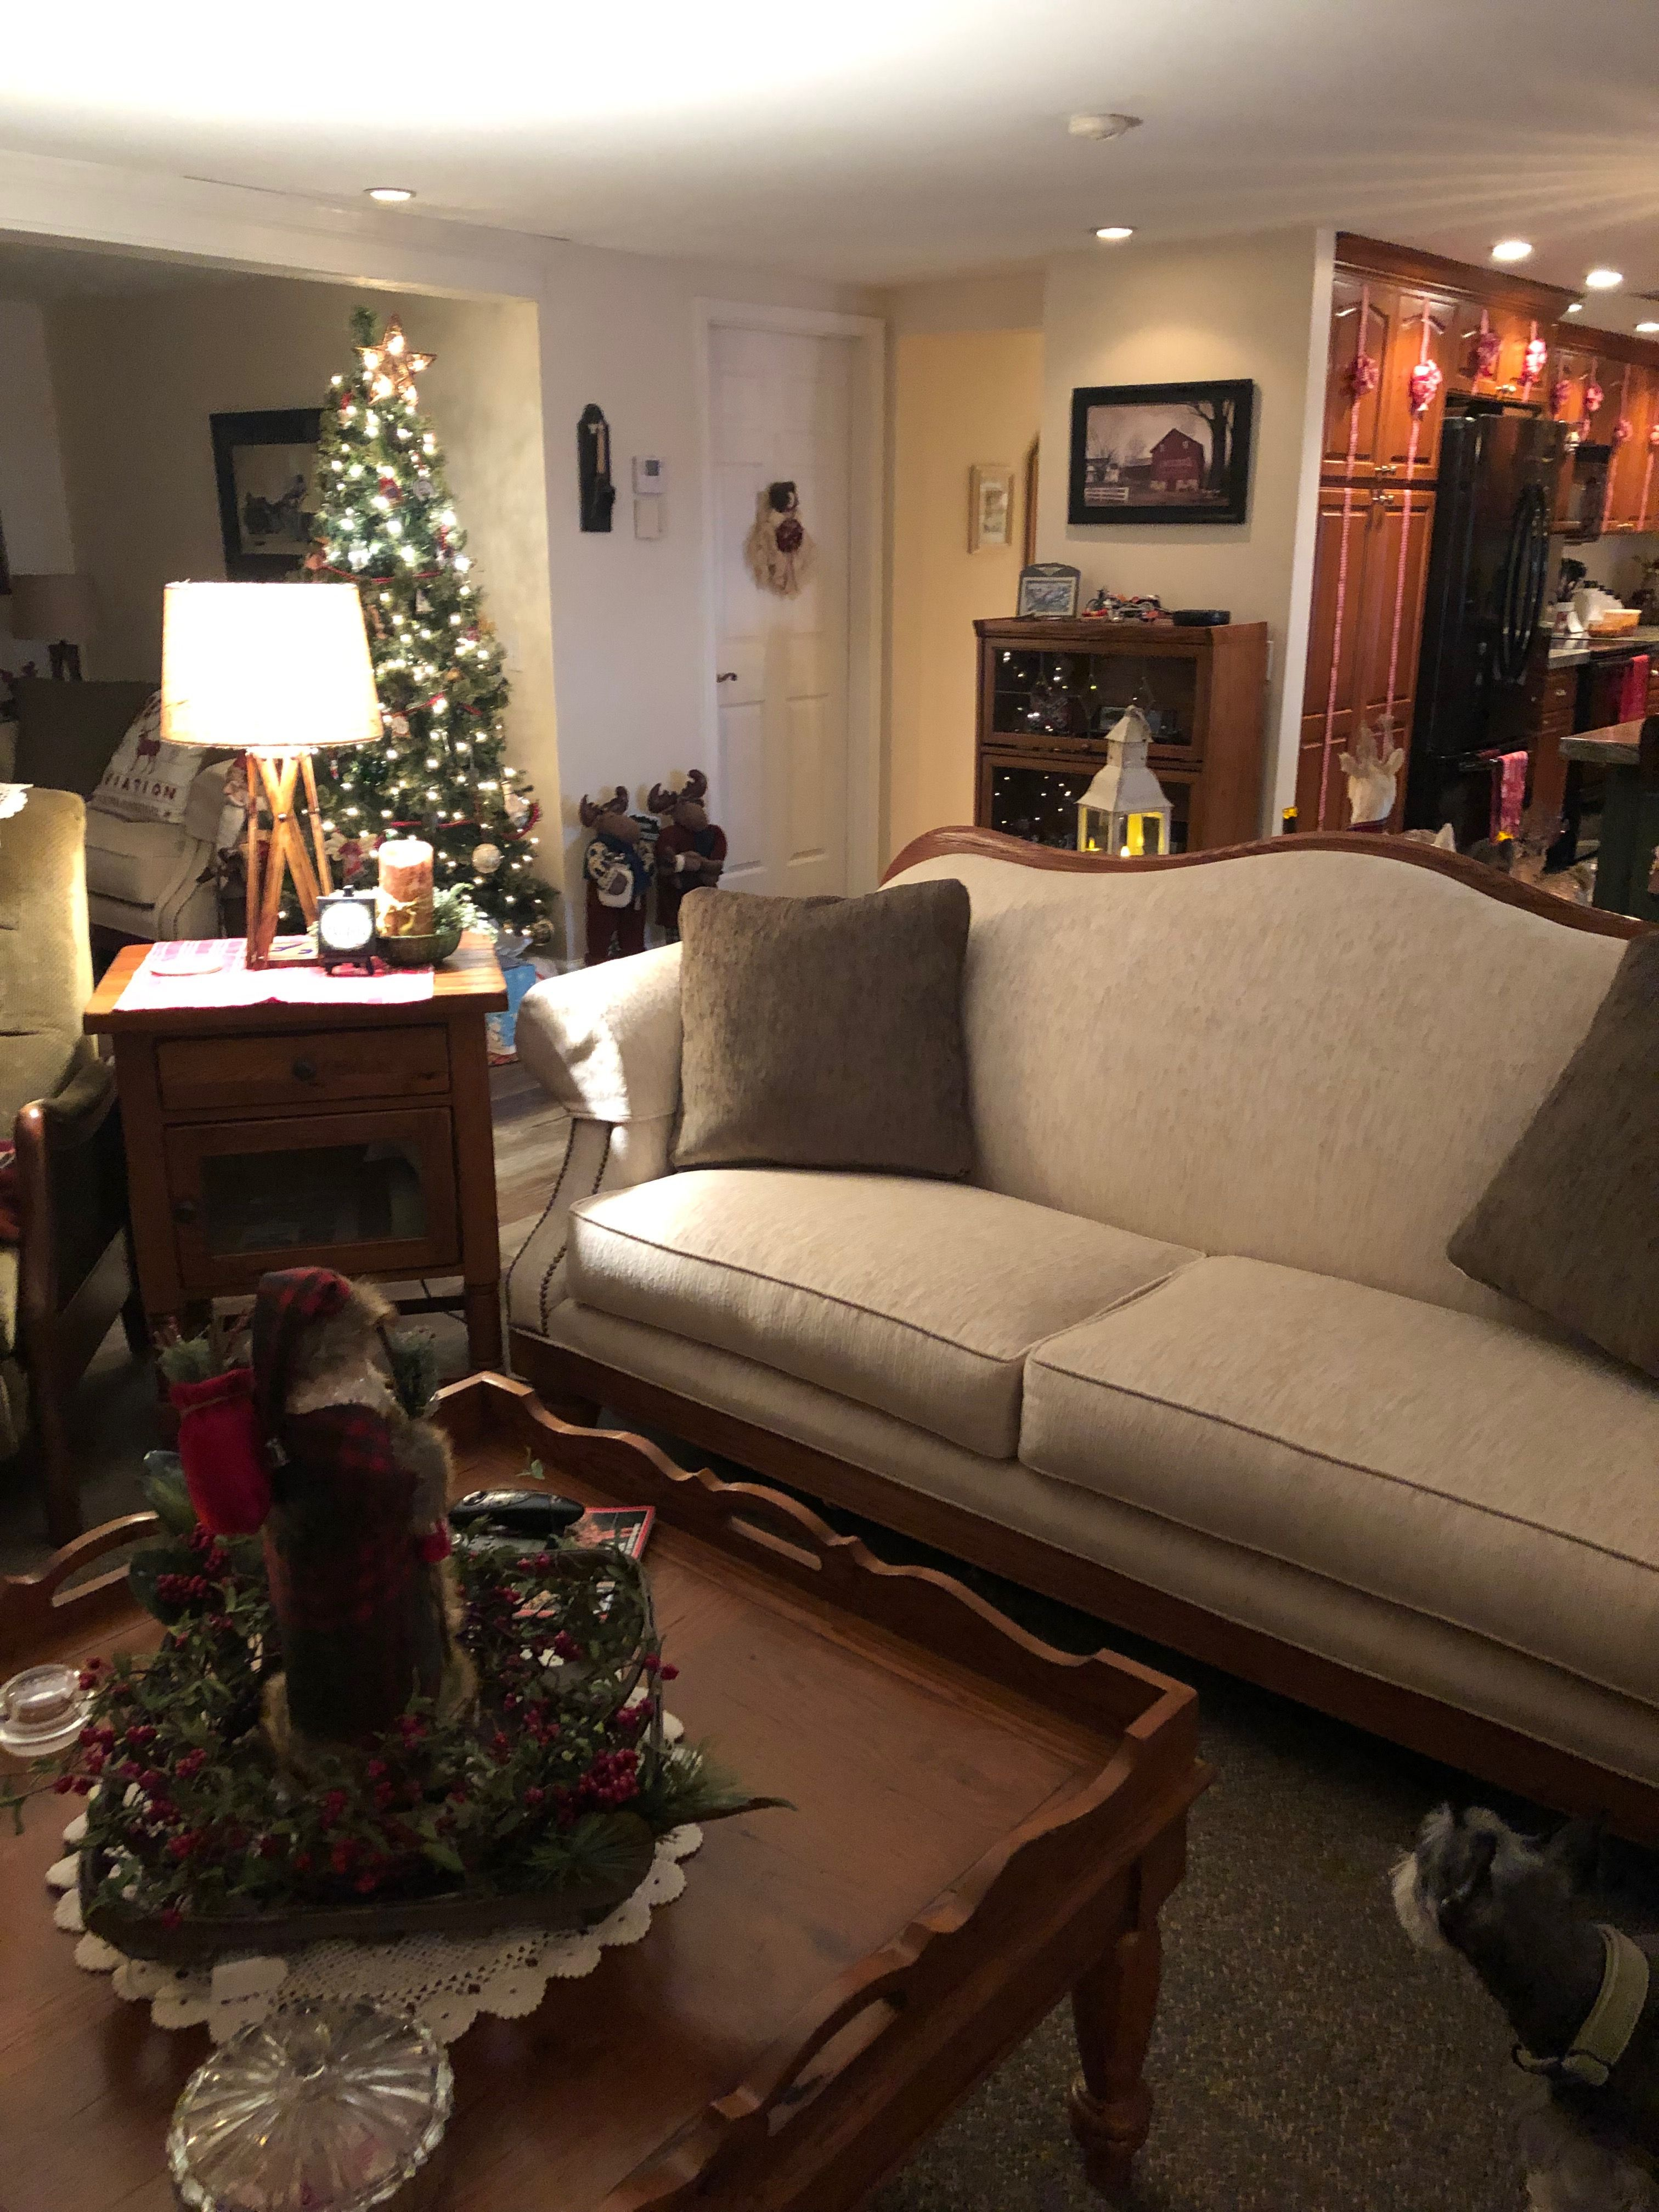 Pin by Debbie Ponder on Christmas Decorating 2018   Decor, Home decor, Furniture